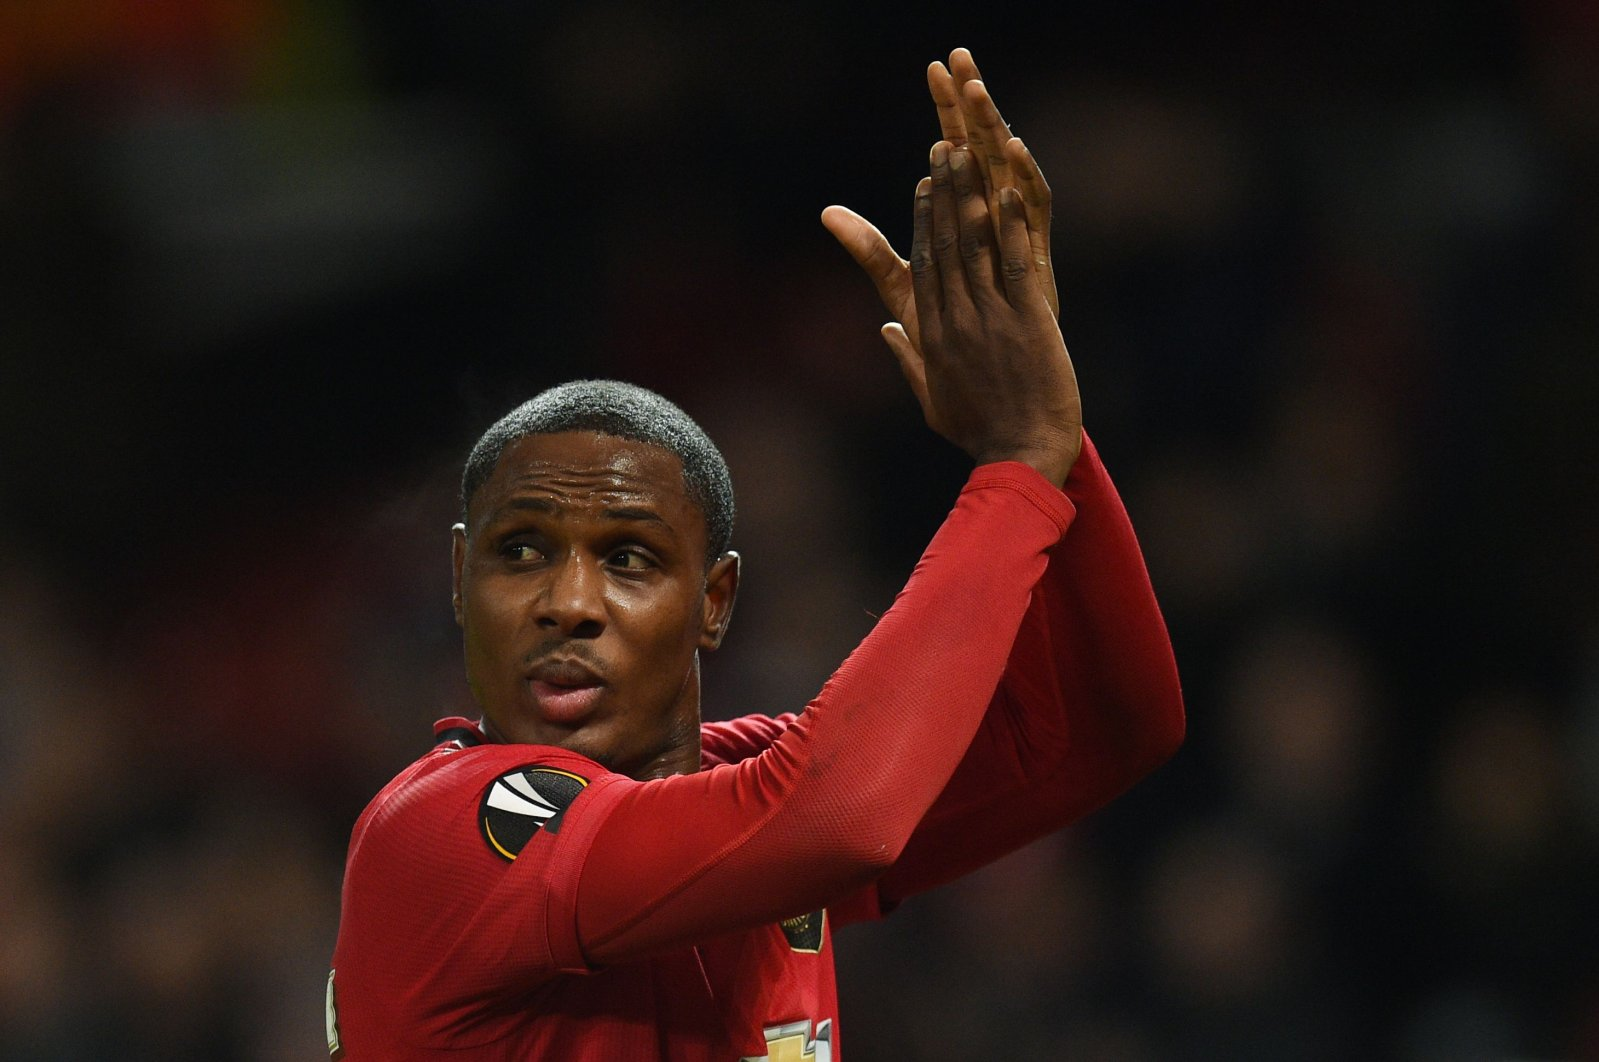 Odion Ighalo reacts during a UEFA Europa League match in Manchester, England, Feb. 27, 2020. (AFP Photo)